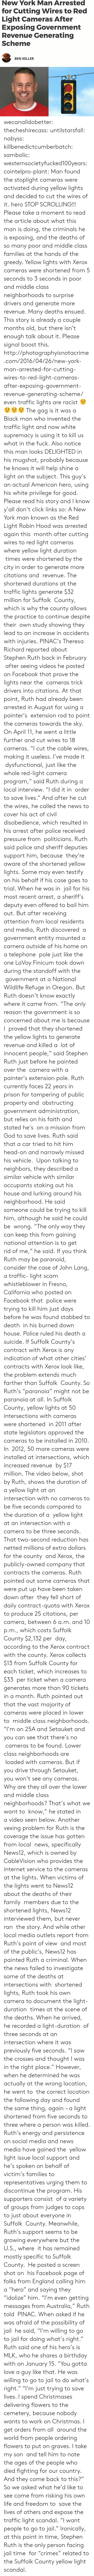 intersection: New York Man Arrested  for Cutting Wires to Red  Light Cameras After  Exposing Government  Revenue Generating  Scheme  BEN KELLER wecanalldobetter: thecheshirecass:  untilstarsfall:   nabyss:  killbenedictcumberbatch:  sambolic:  westernsocietyfucked100years:  cointelpro-plant: Man found the stoplight cameras were activated during yellow lights and decided to cut the wires of it. hero  STOP SCROLLING!!! Please take a moment to read the article about what this man is doing, the criminals he is exposing, and the deaths of so many poor and middle class families at the hands of the greedy. Yellow lights with Xerox cameras were shortened from 5 seconds to 3 seconds in poor and middle class neighborhoods to surprise drivers and generate more revenue. Many deaths ensued. This story is already a couple months old, but there isn't enough talk about it. Please signal boost this. http://photographyisnotacrime.com/2016/04/26/new-york-man-arrested-for-cutting-wires-to-red-light-cameras-after-exposing-government-revenue-generating-scheme/   even traffic lights are racist  😧😧😧😧  The gag is it was a Black man who invented the traffic light and now white supremacy is using it to kill us what in the fuck.   Also notice this man looks DELIGHTED in his mugshot, probably because he knows it will help shine a light on the subject.  This guy's an actual American hero, using his white privilege for good. Please read his story and I know y'all don't click links so:  A New York man known as the Red Light Robin Hood was arrested again this month after cutting wires to red light cameras where yellow light duration times were shortened by the city in order to generate more citations and revenue.  The shortened durations at the traffic lights generate $32 million for Suffolk County, which is why the county allows the practice to continue despite their own study showing they lead to an increase in accidents with injuries.  PINAC's Theresa Richard reported about Stephen Ruth back in 